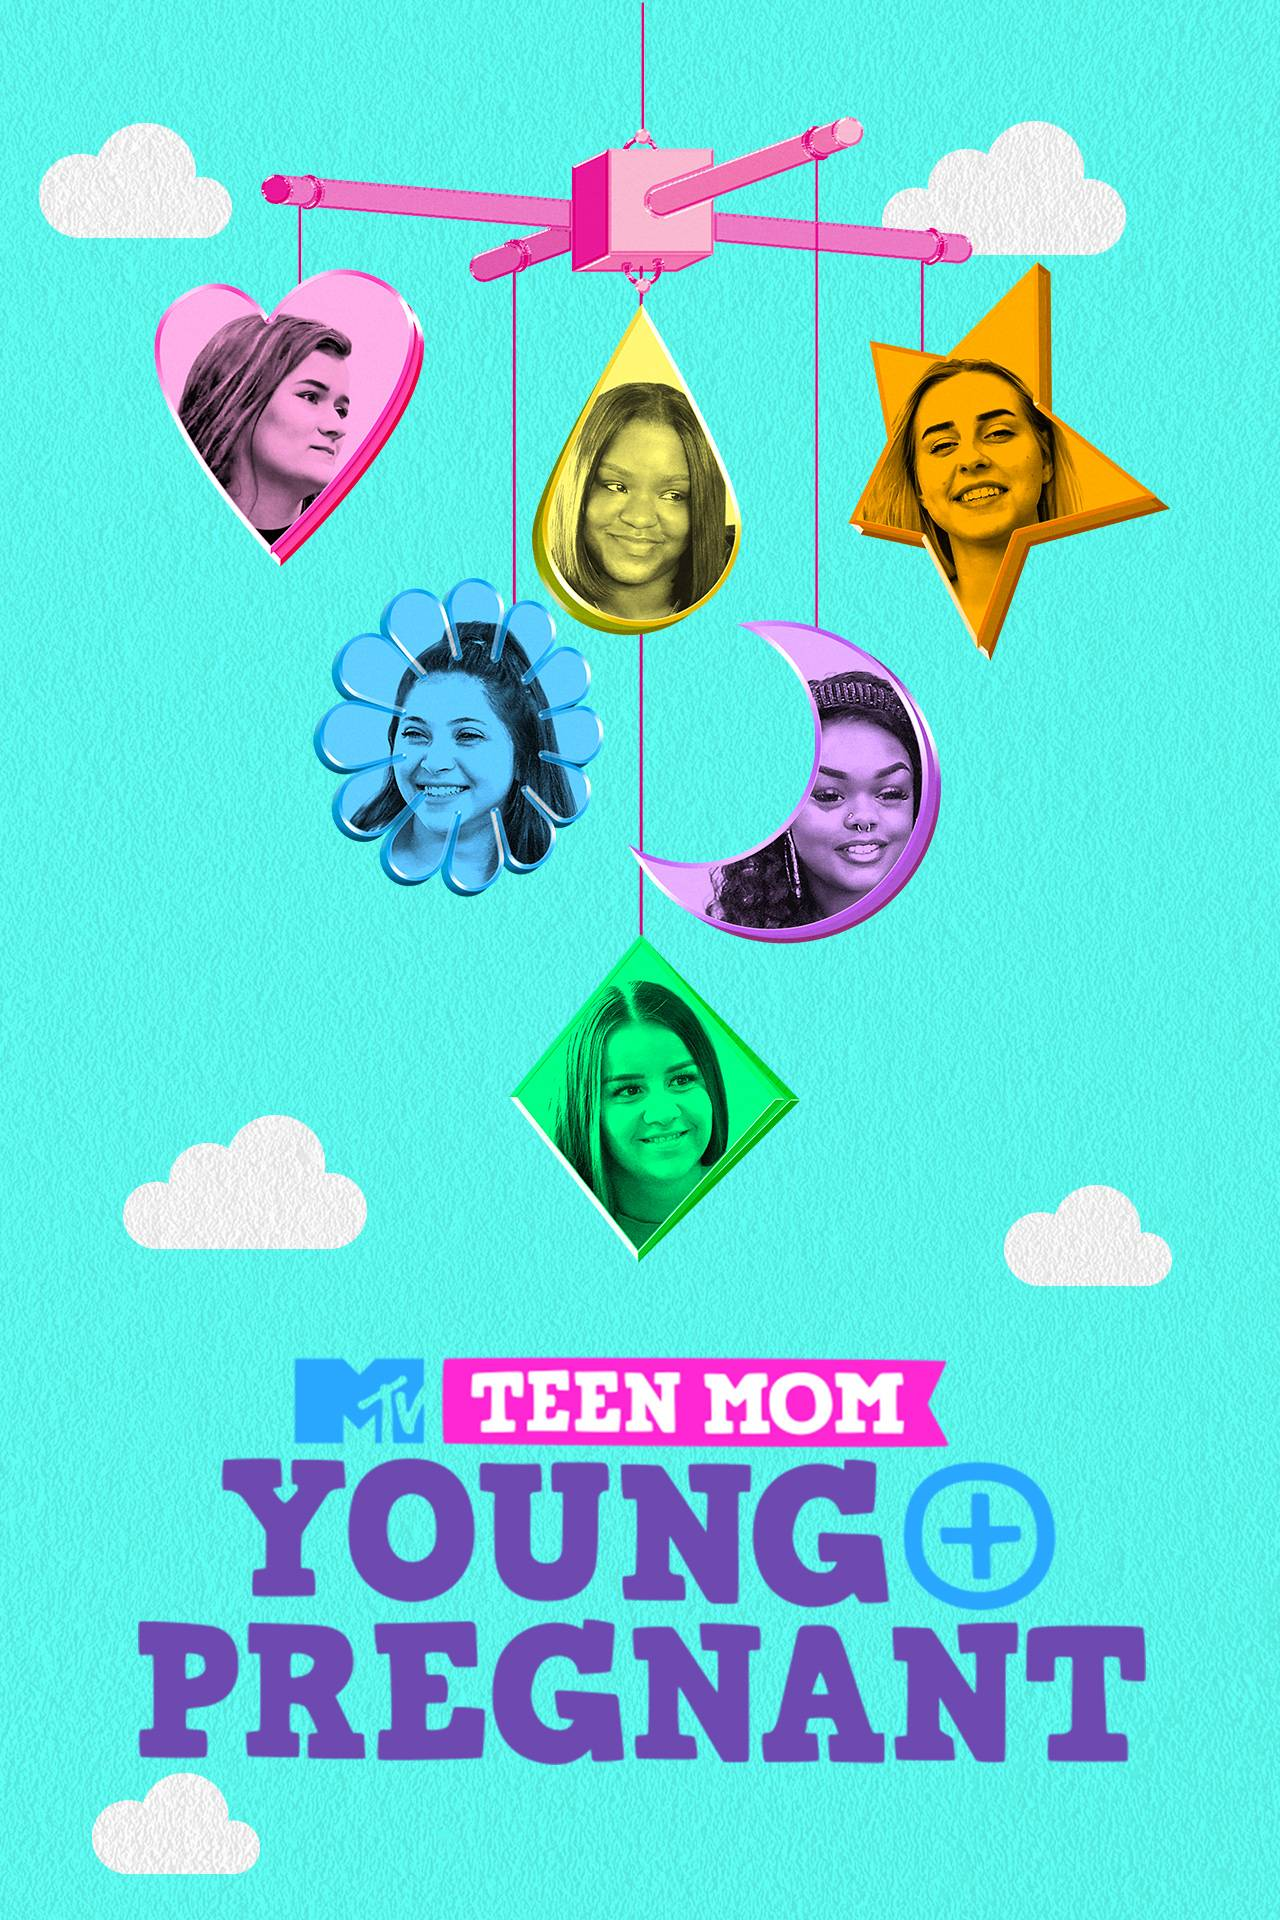 Teen Mom: Young + Pregnant - Season 3 Episode 6 - Ups and Downs